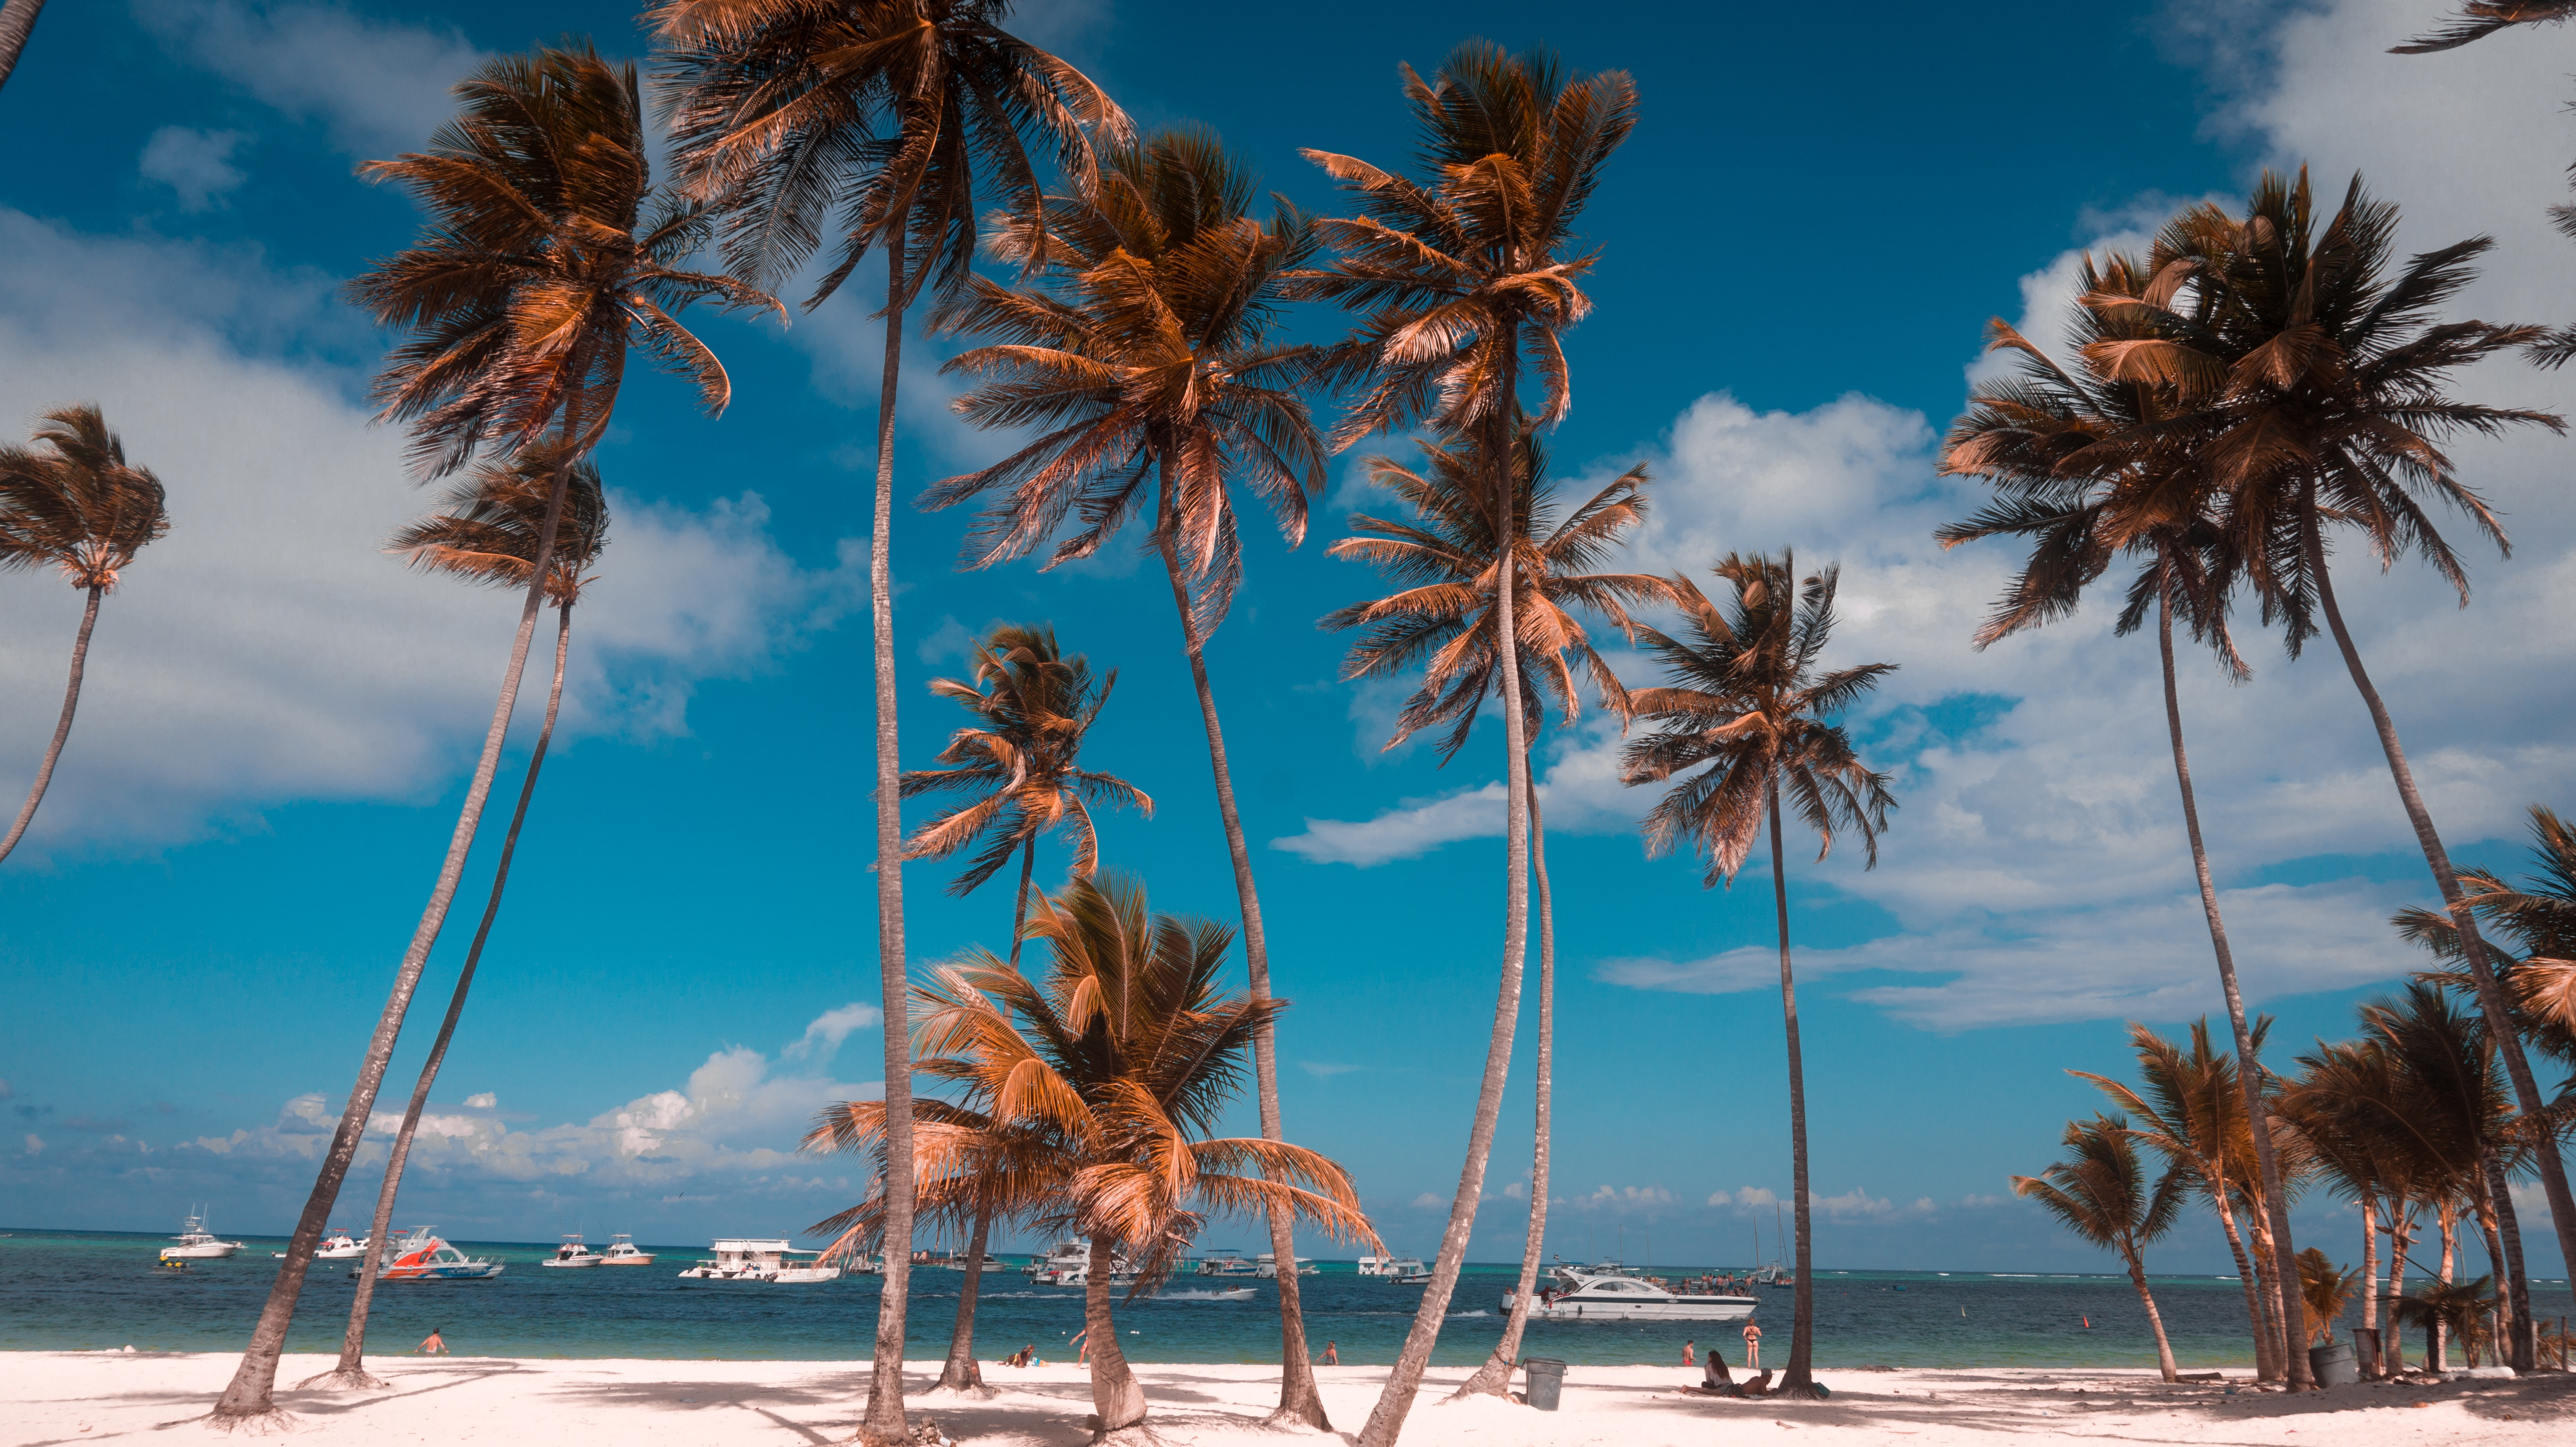 coconut palm trees by the sea during daytime